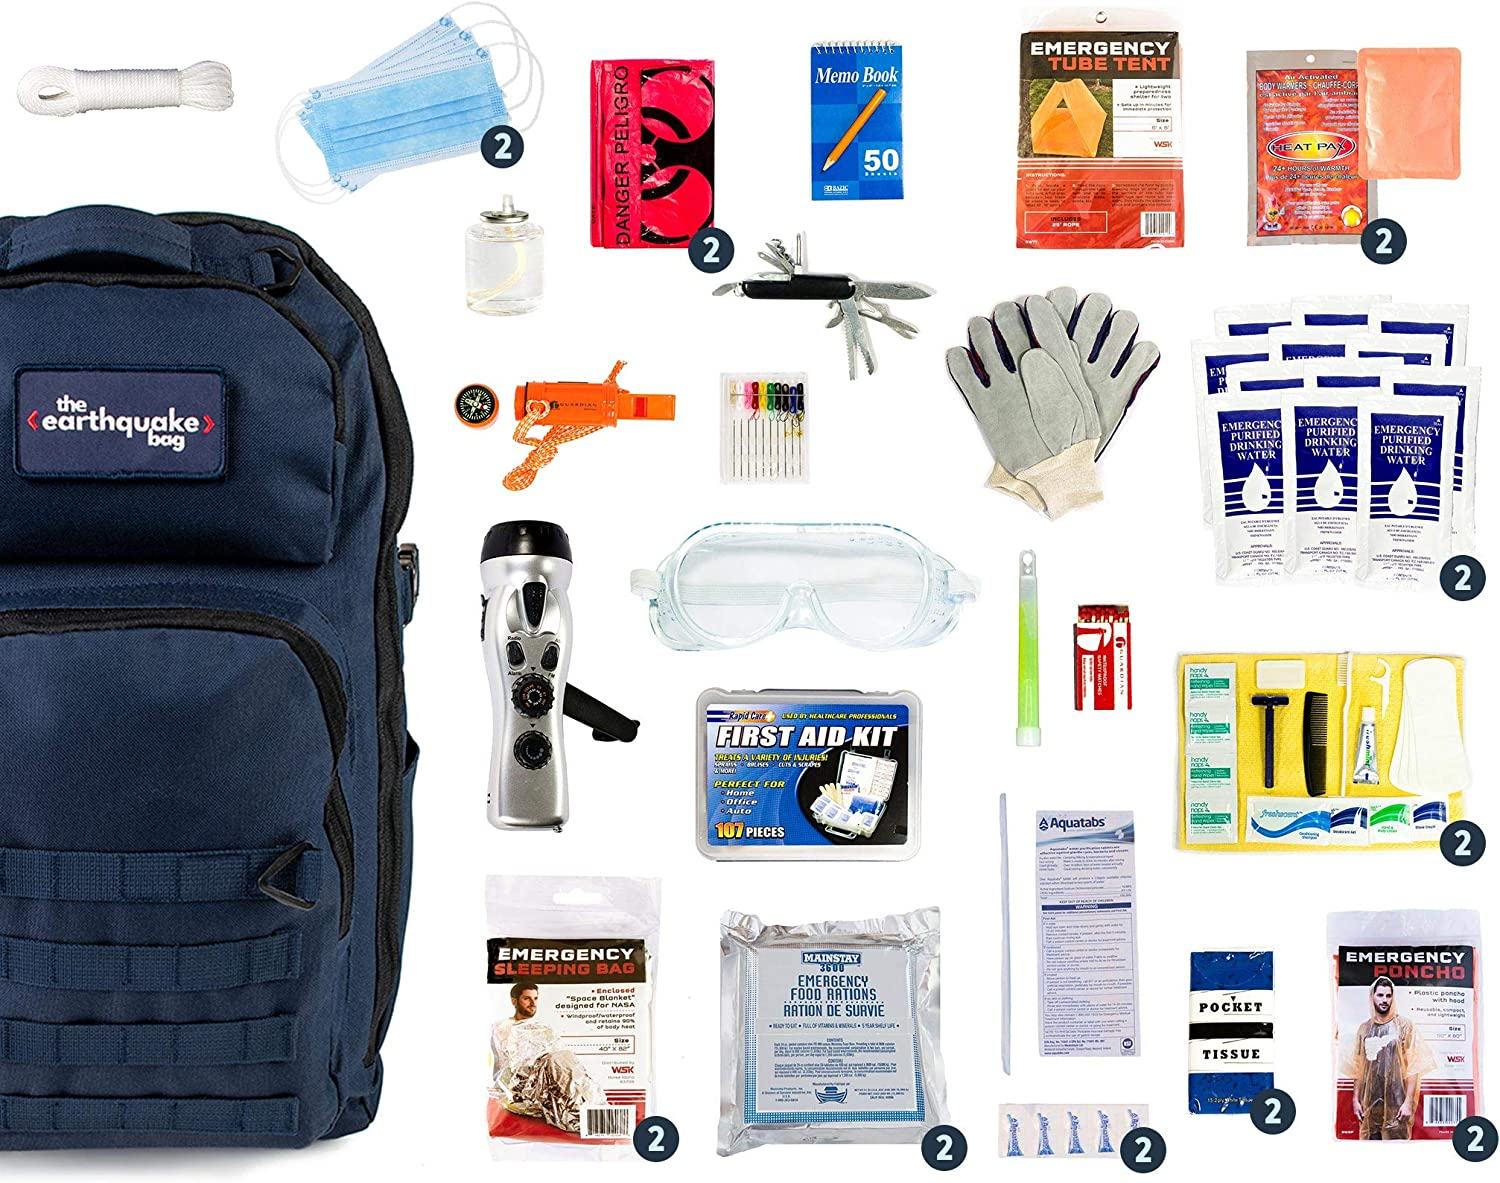 Redfora Complete Earthquake Bag - Most Popular Emergency kit for Earthquakes, Hurricanes, floods + Other disasters (2 Person, 3 Days, Blue Bag) (2 Person)